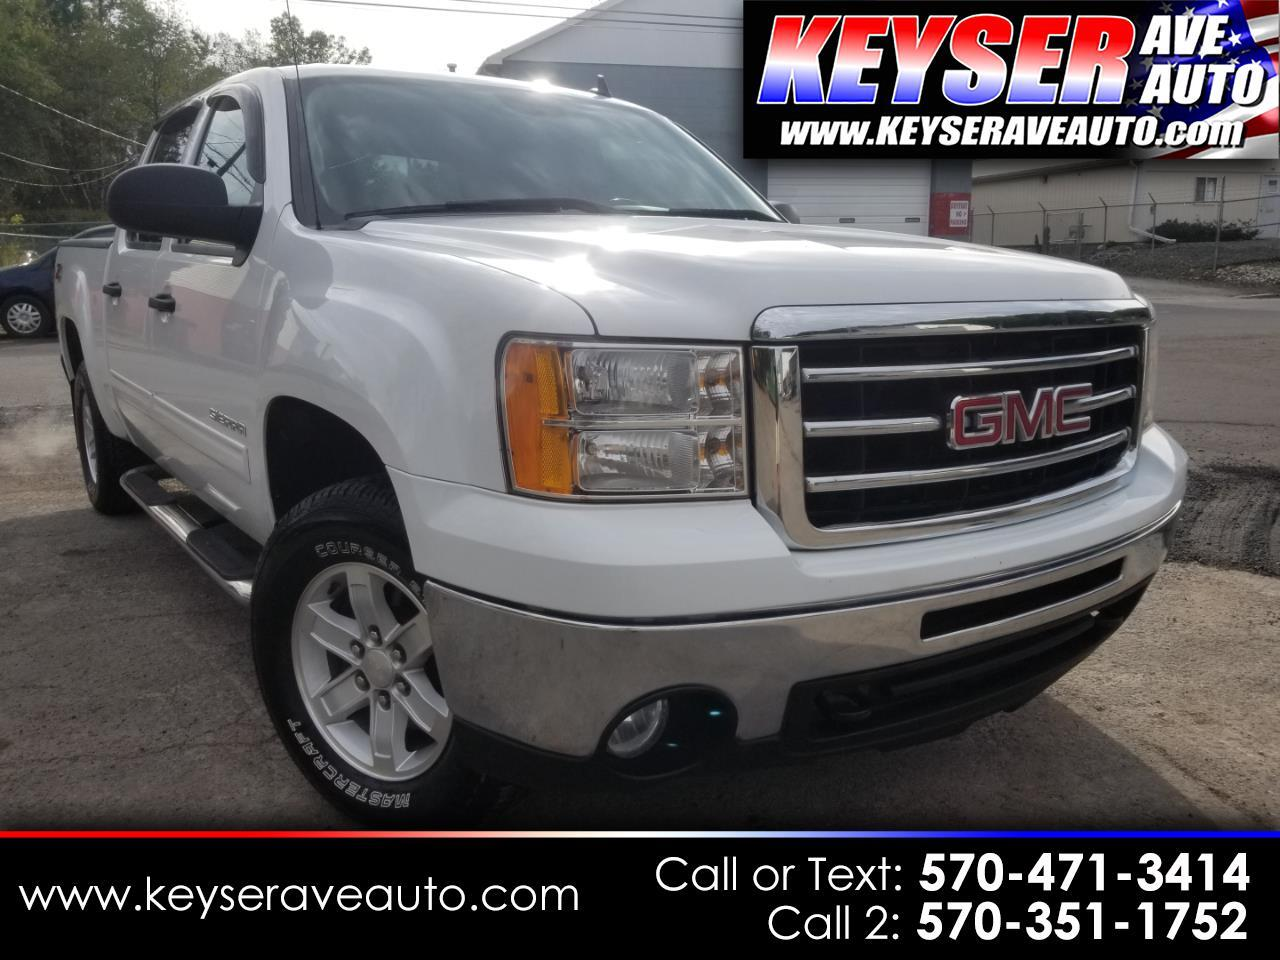 Used Cars For Sale Moosic Pa 18507 Keyser Avenue Auto Sales 2012 Gmc Terrain Fuel Filter Sierra 1500 Sle Crew Cab 4wd